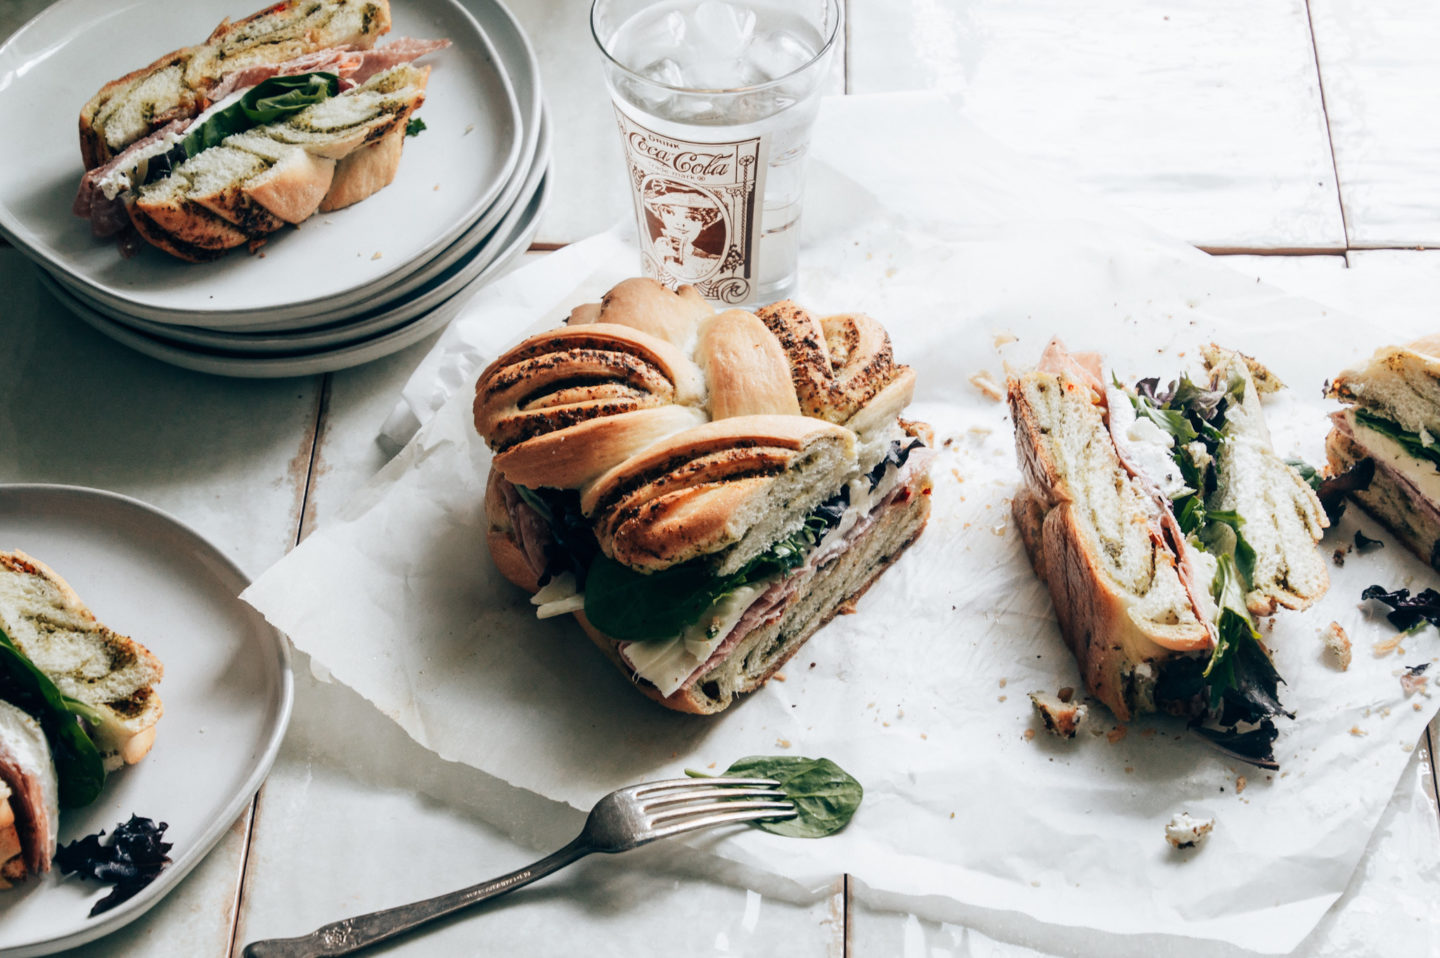 muffuletta sandwich is the perfect food for a laid back dinner with guests